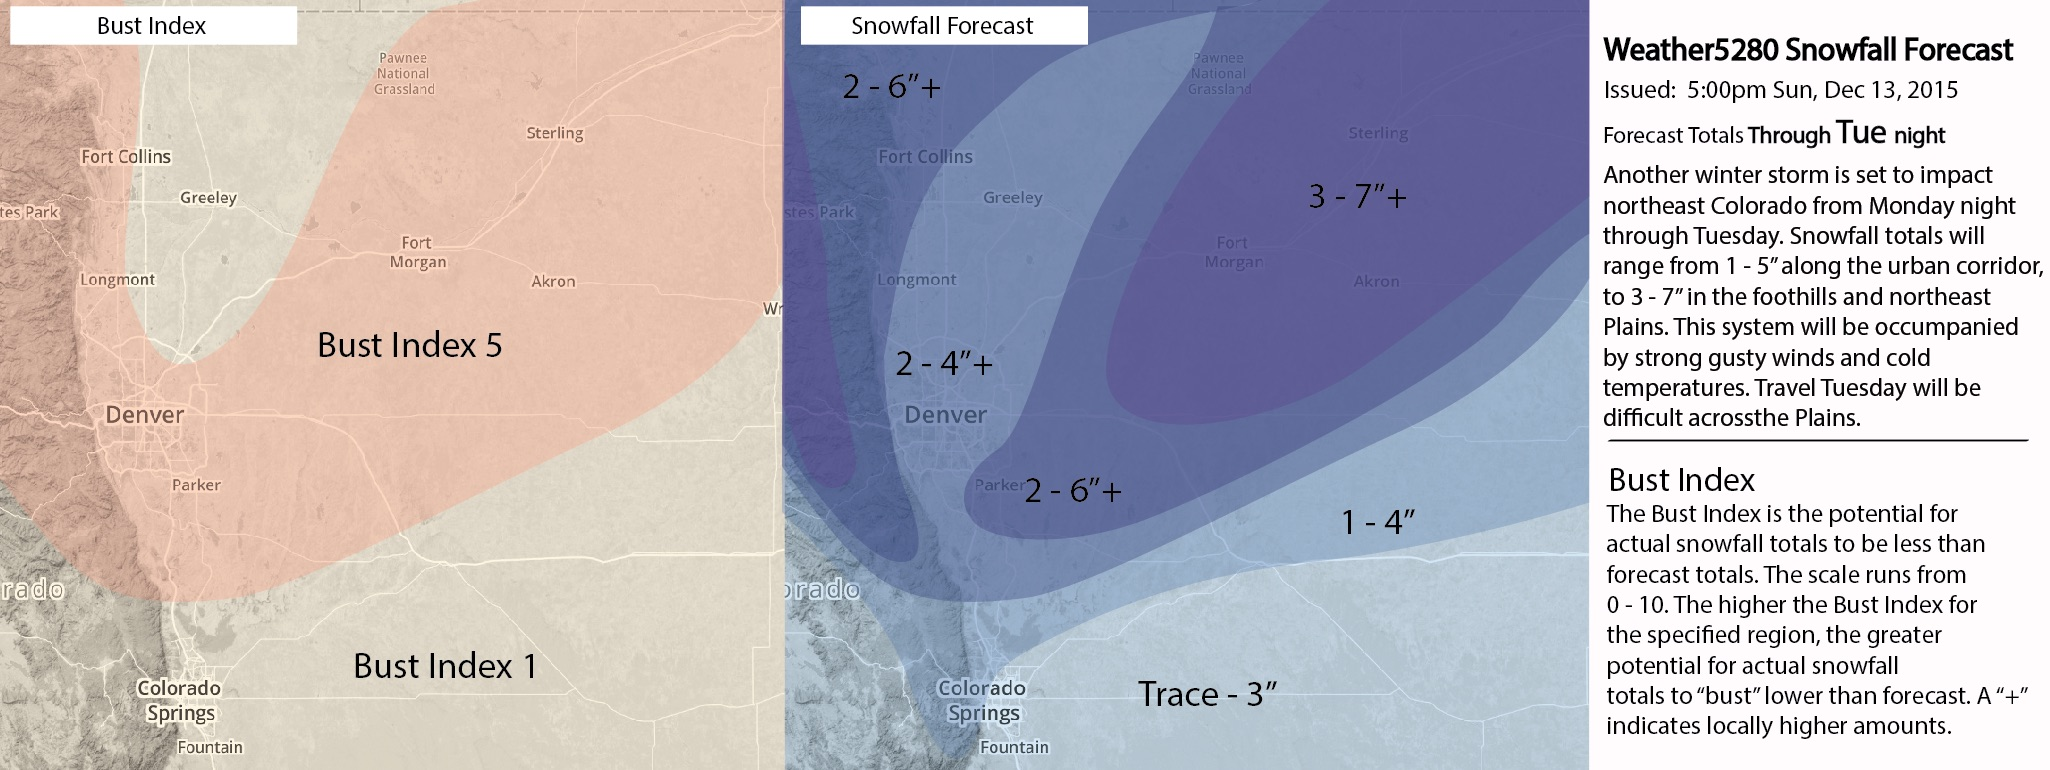 Weather5280 snowfall forecast map